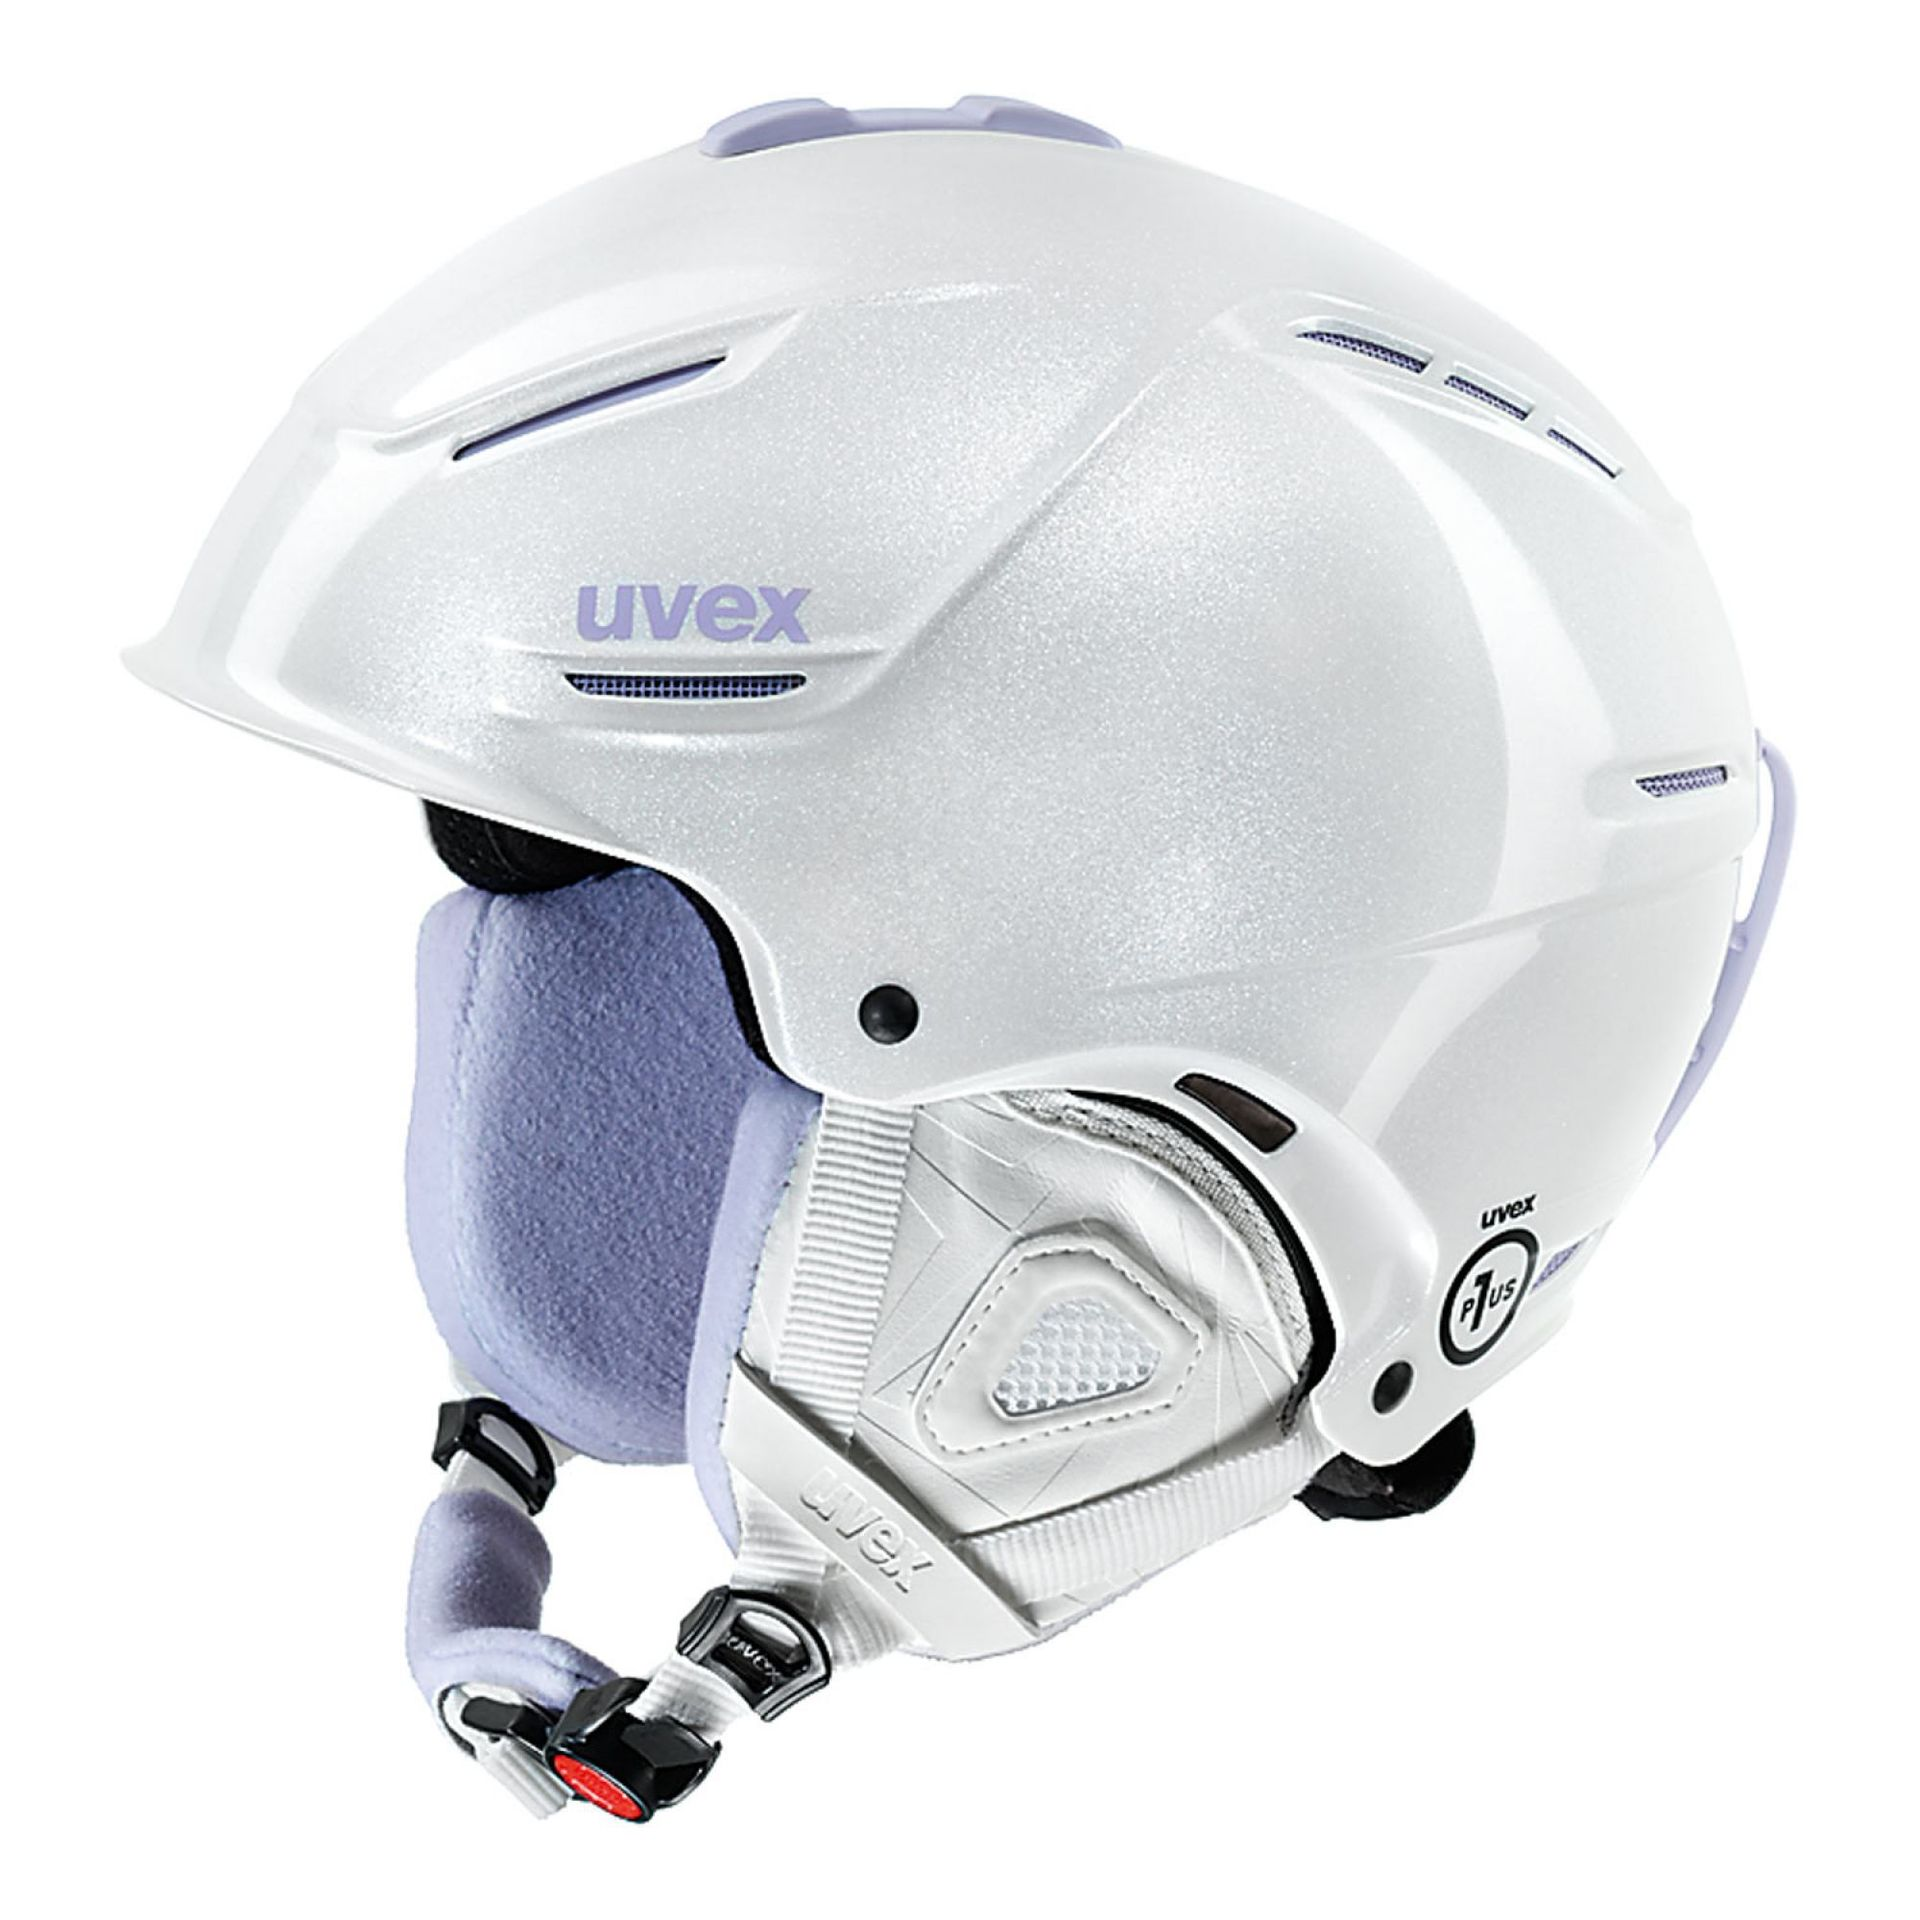 KASK UVEX P1US PRO WL WHITE SKYFALL